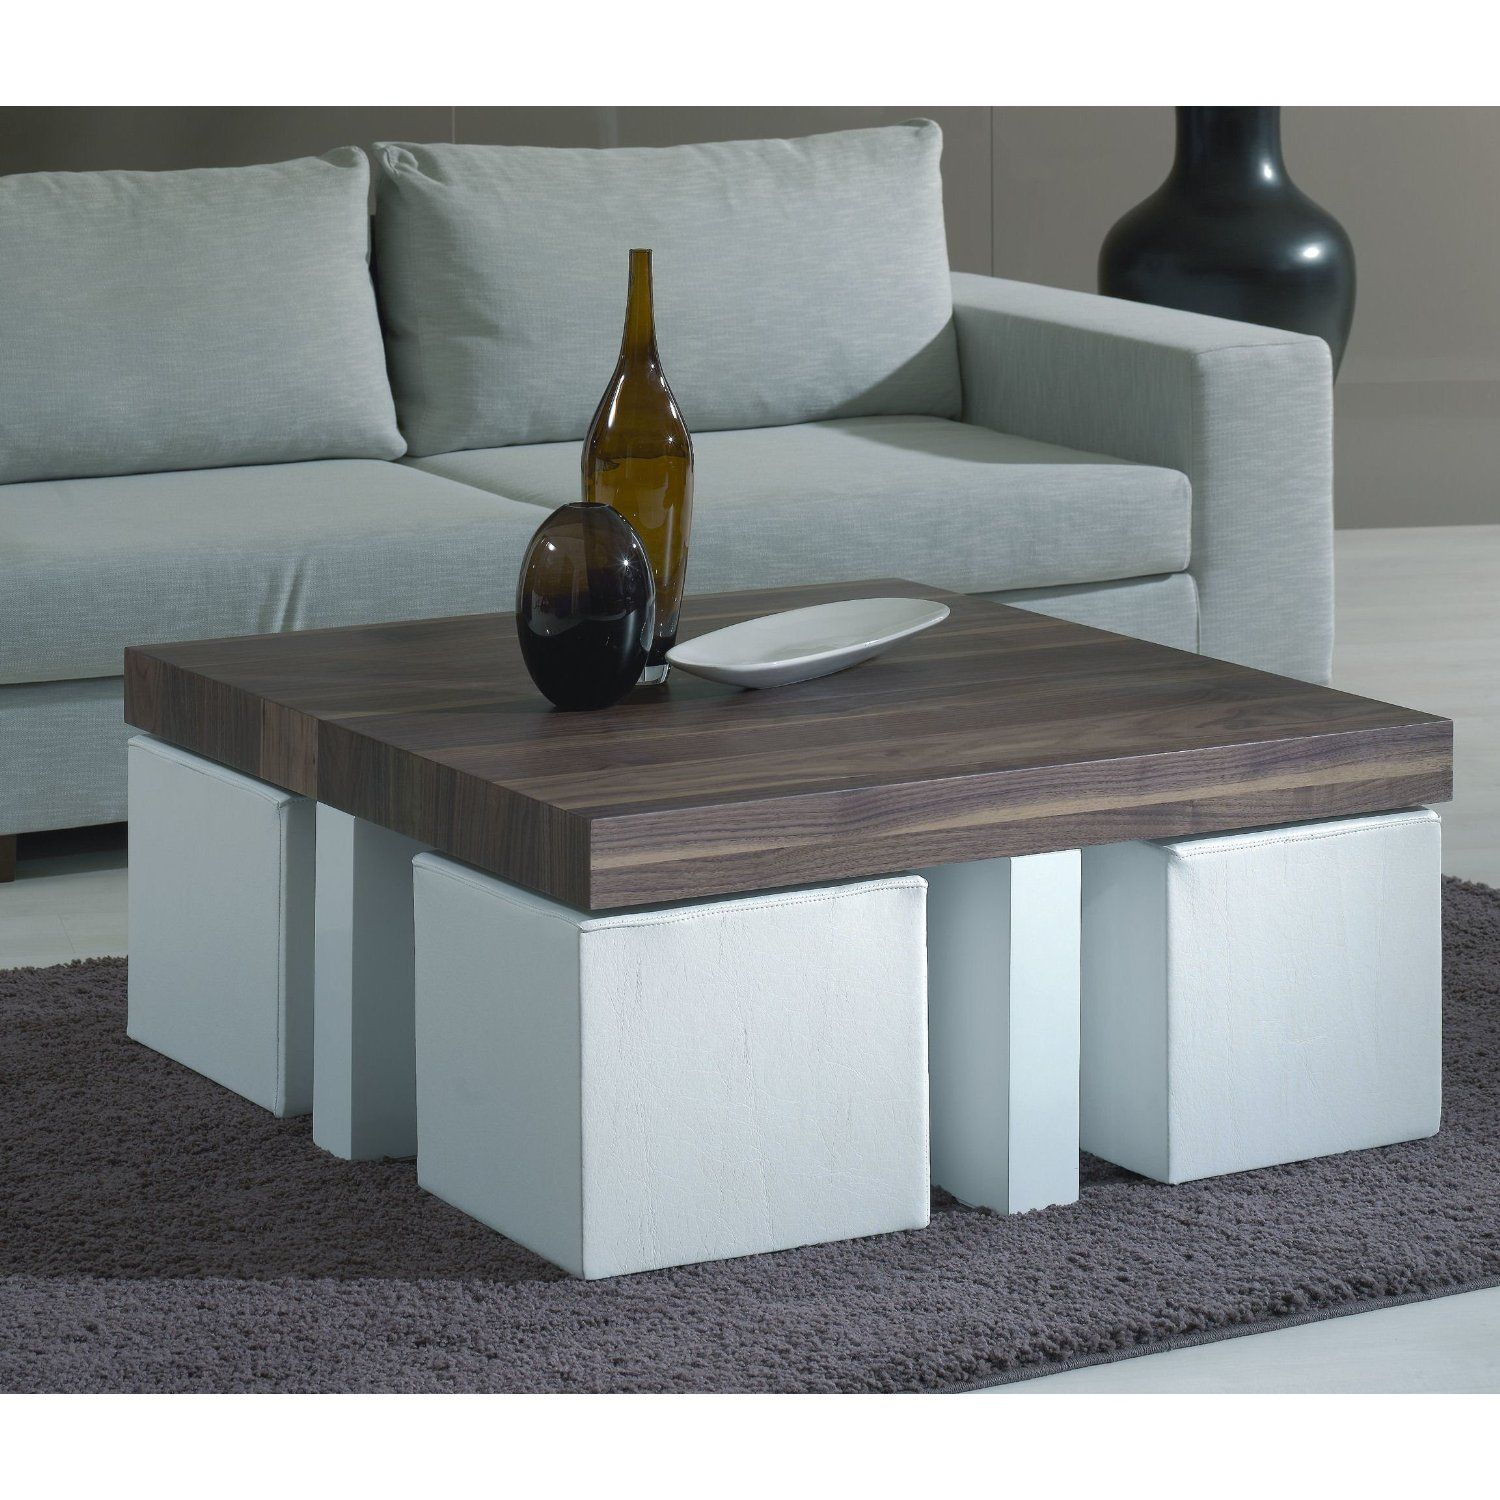 Coffee table with stools love this idea for stools